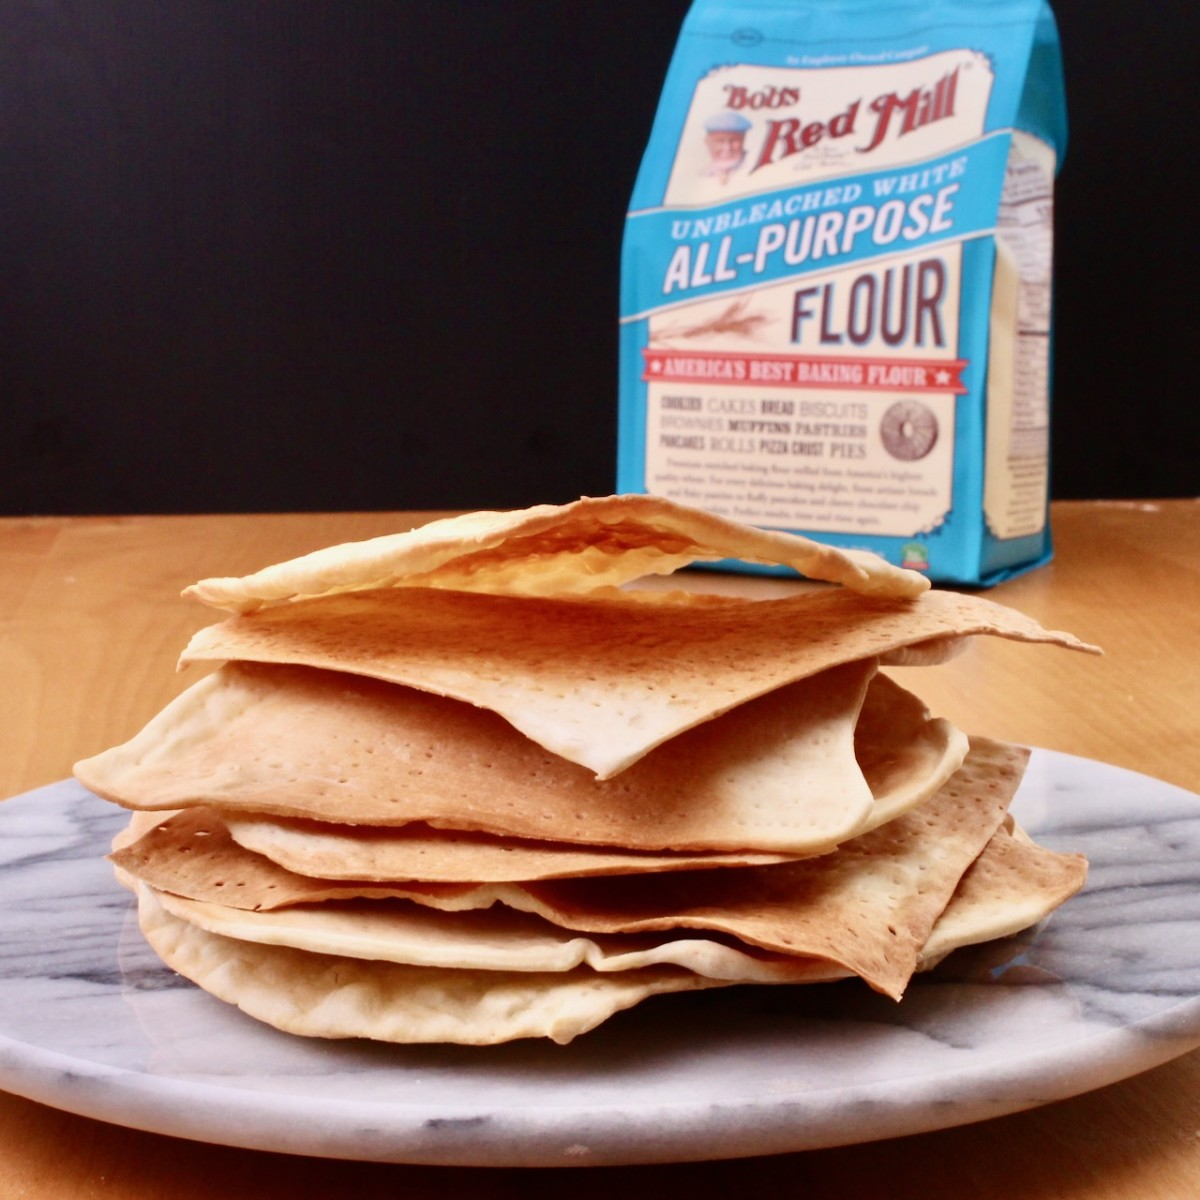 Homemade matzo with Bob's Red Mill's amazing quality flour